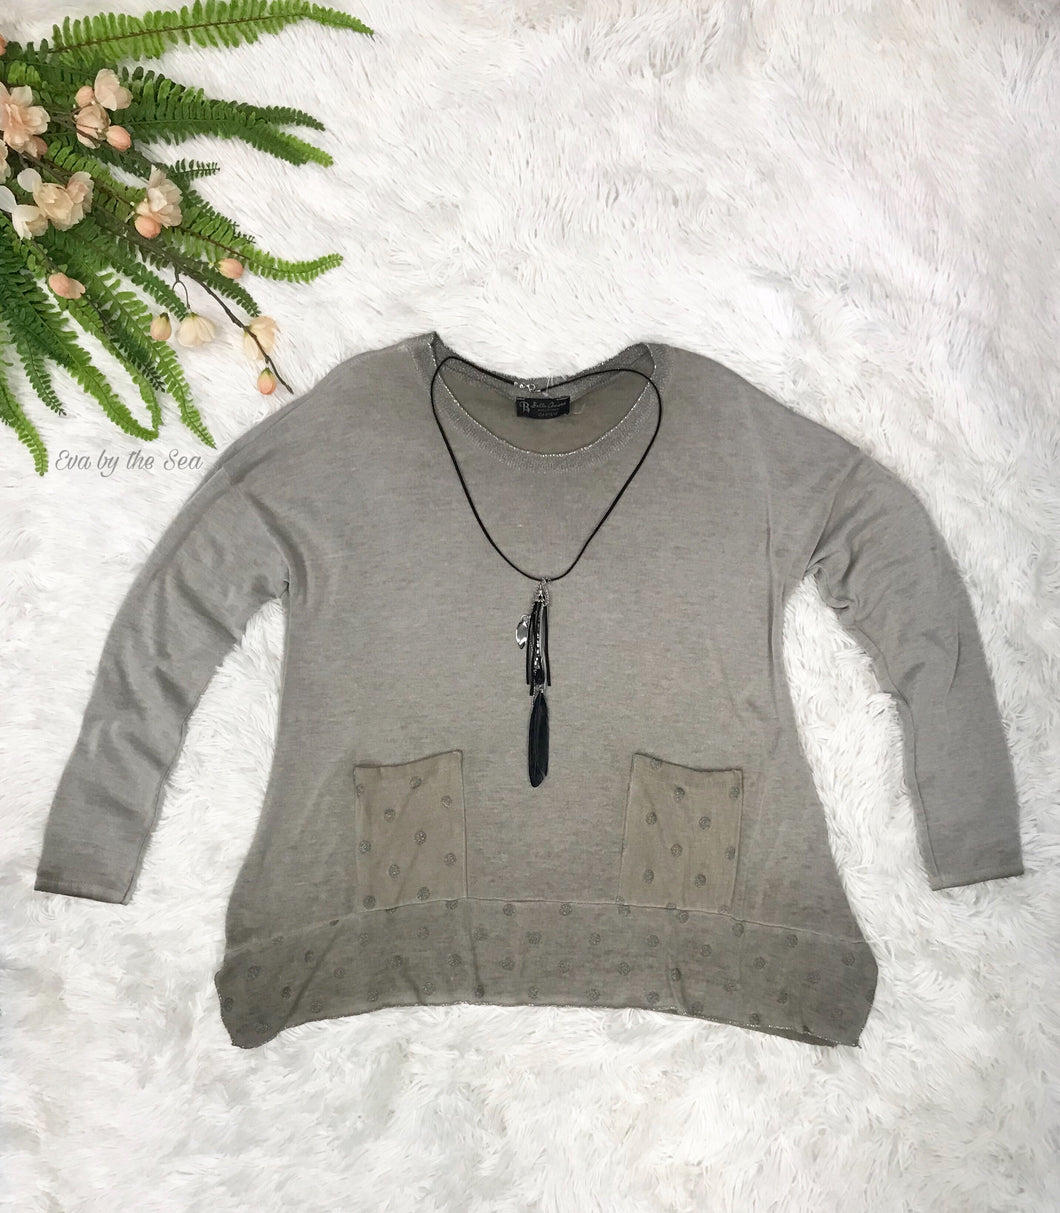 Polka Dot Pocket Top with Necklace in Taupe